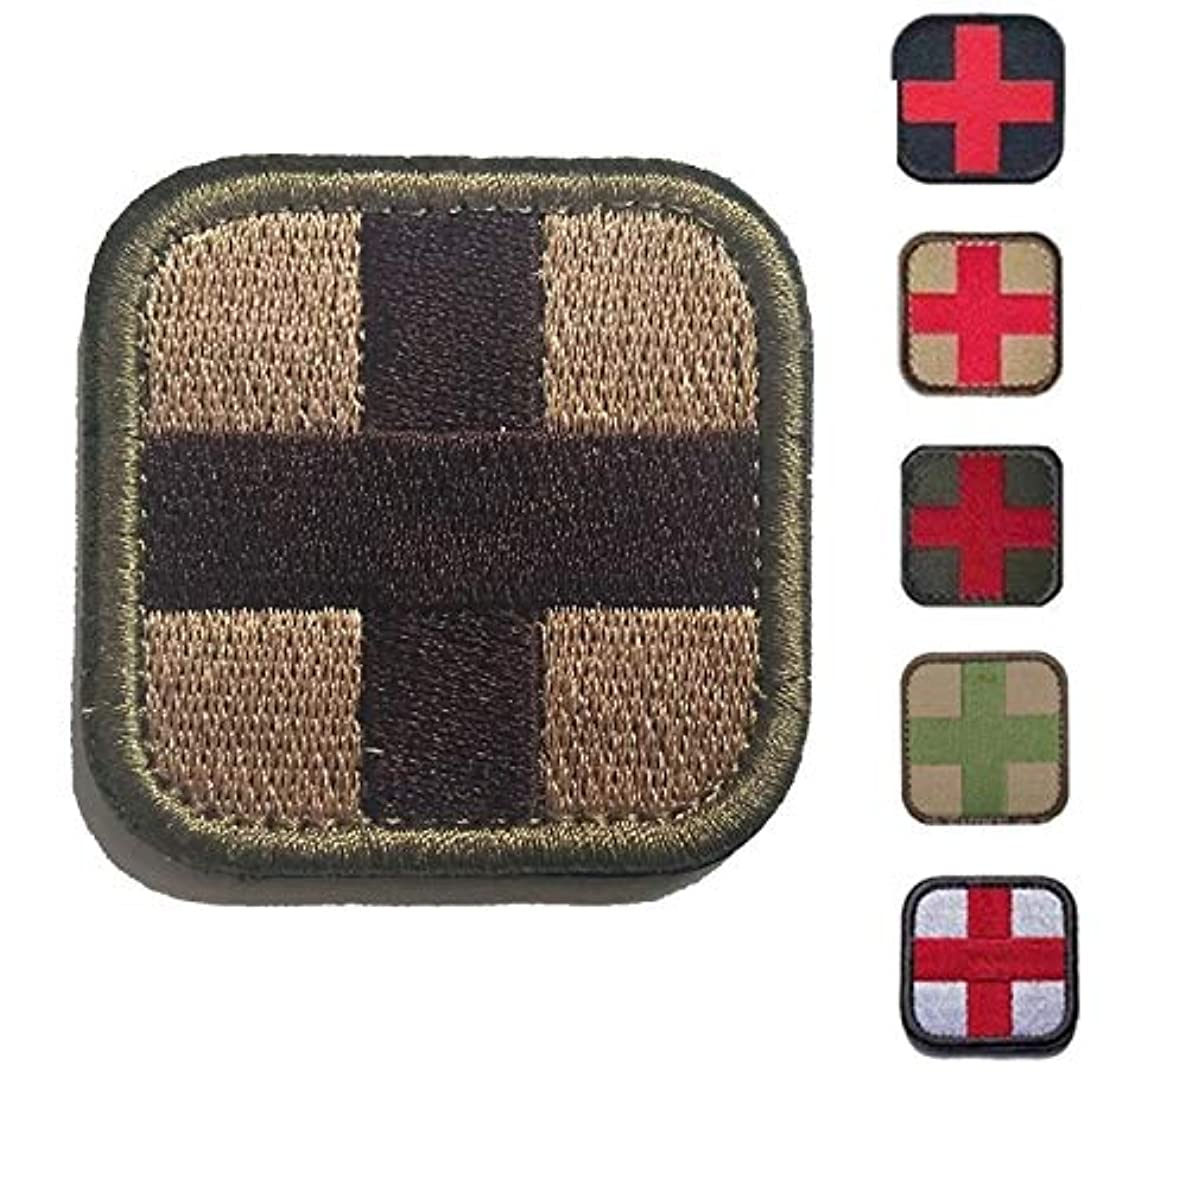 Morton Home-Cross 50mm Tactical Hook & Loop Patch - Medic (Brown)